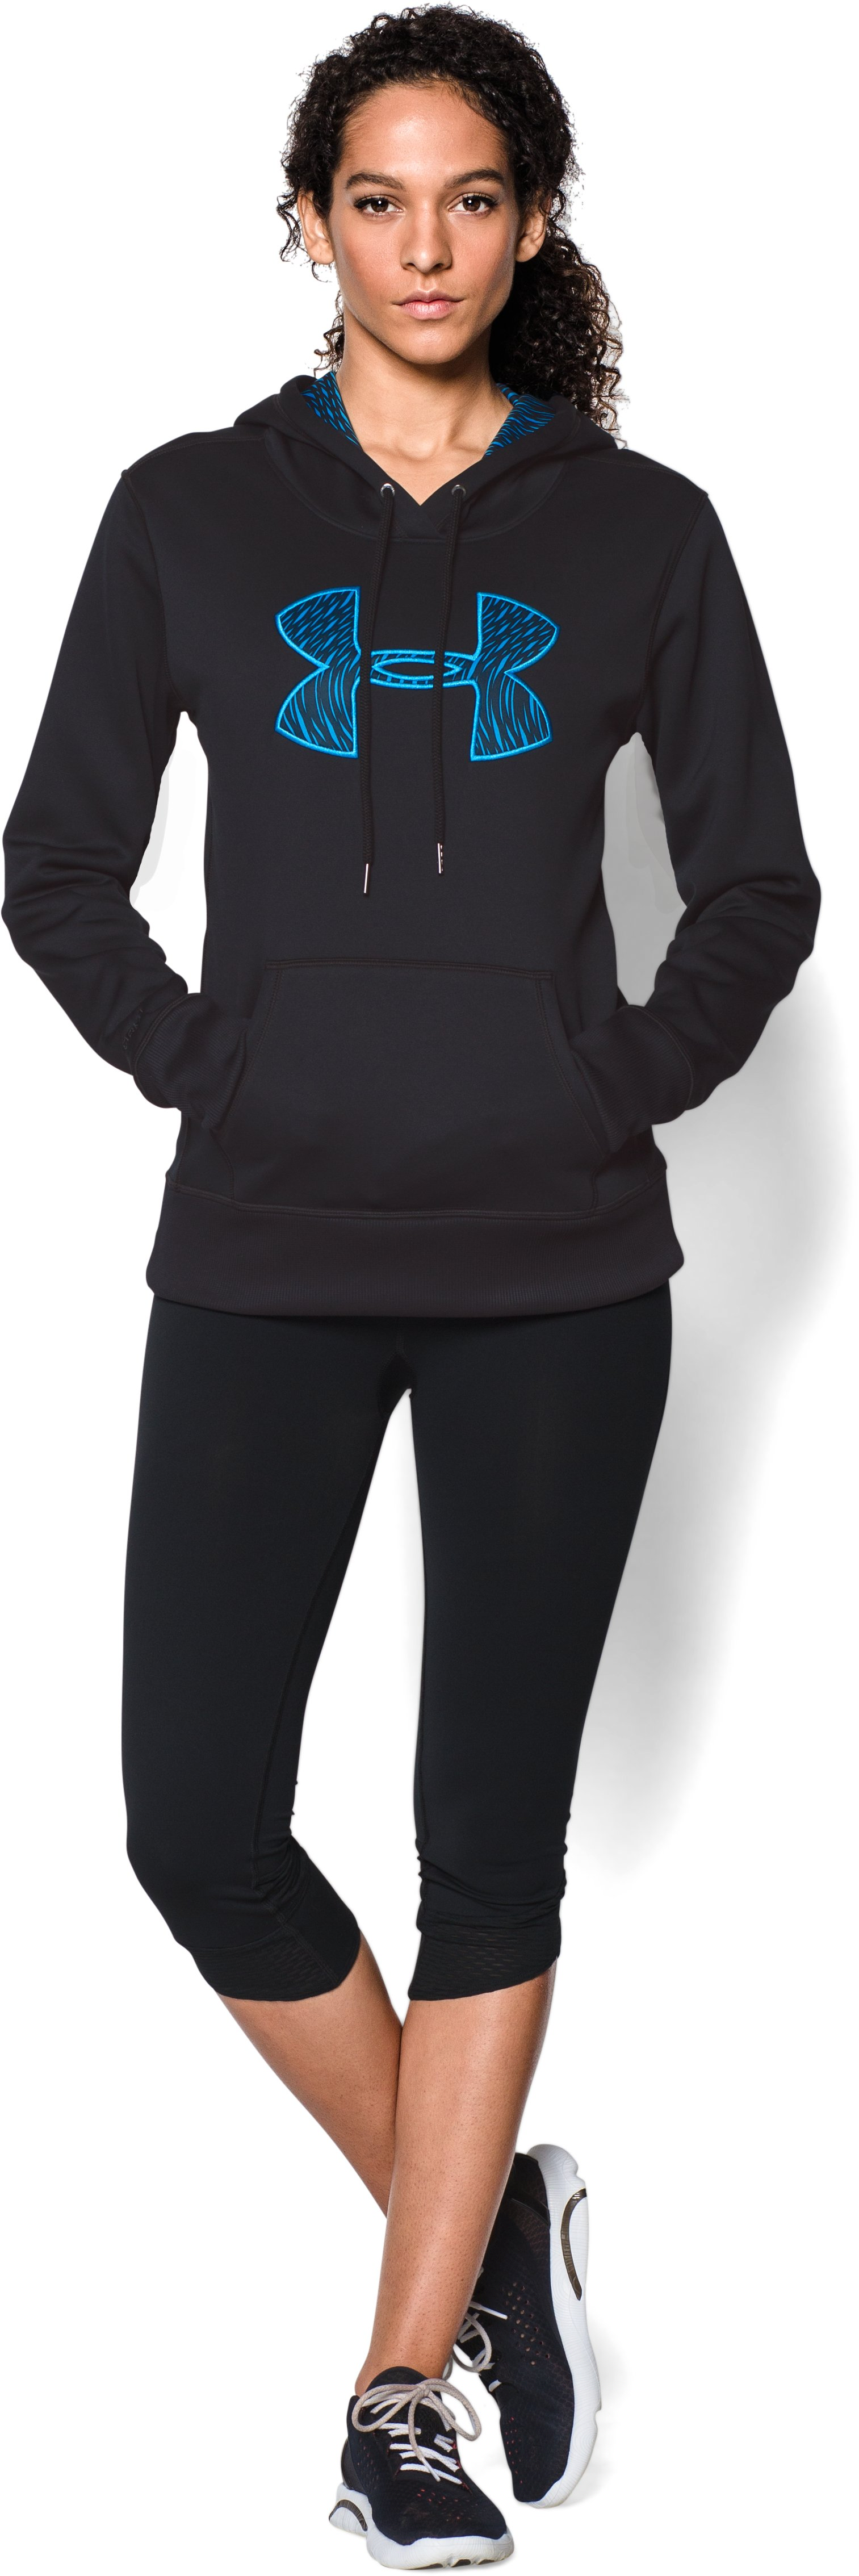 Under armour hoodies for women